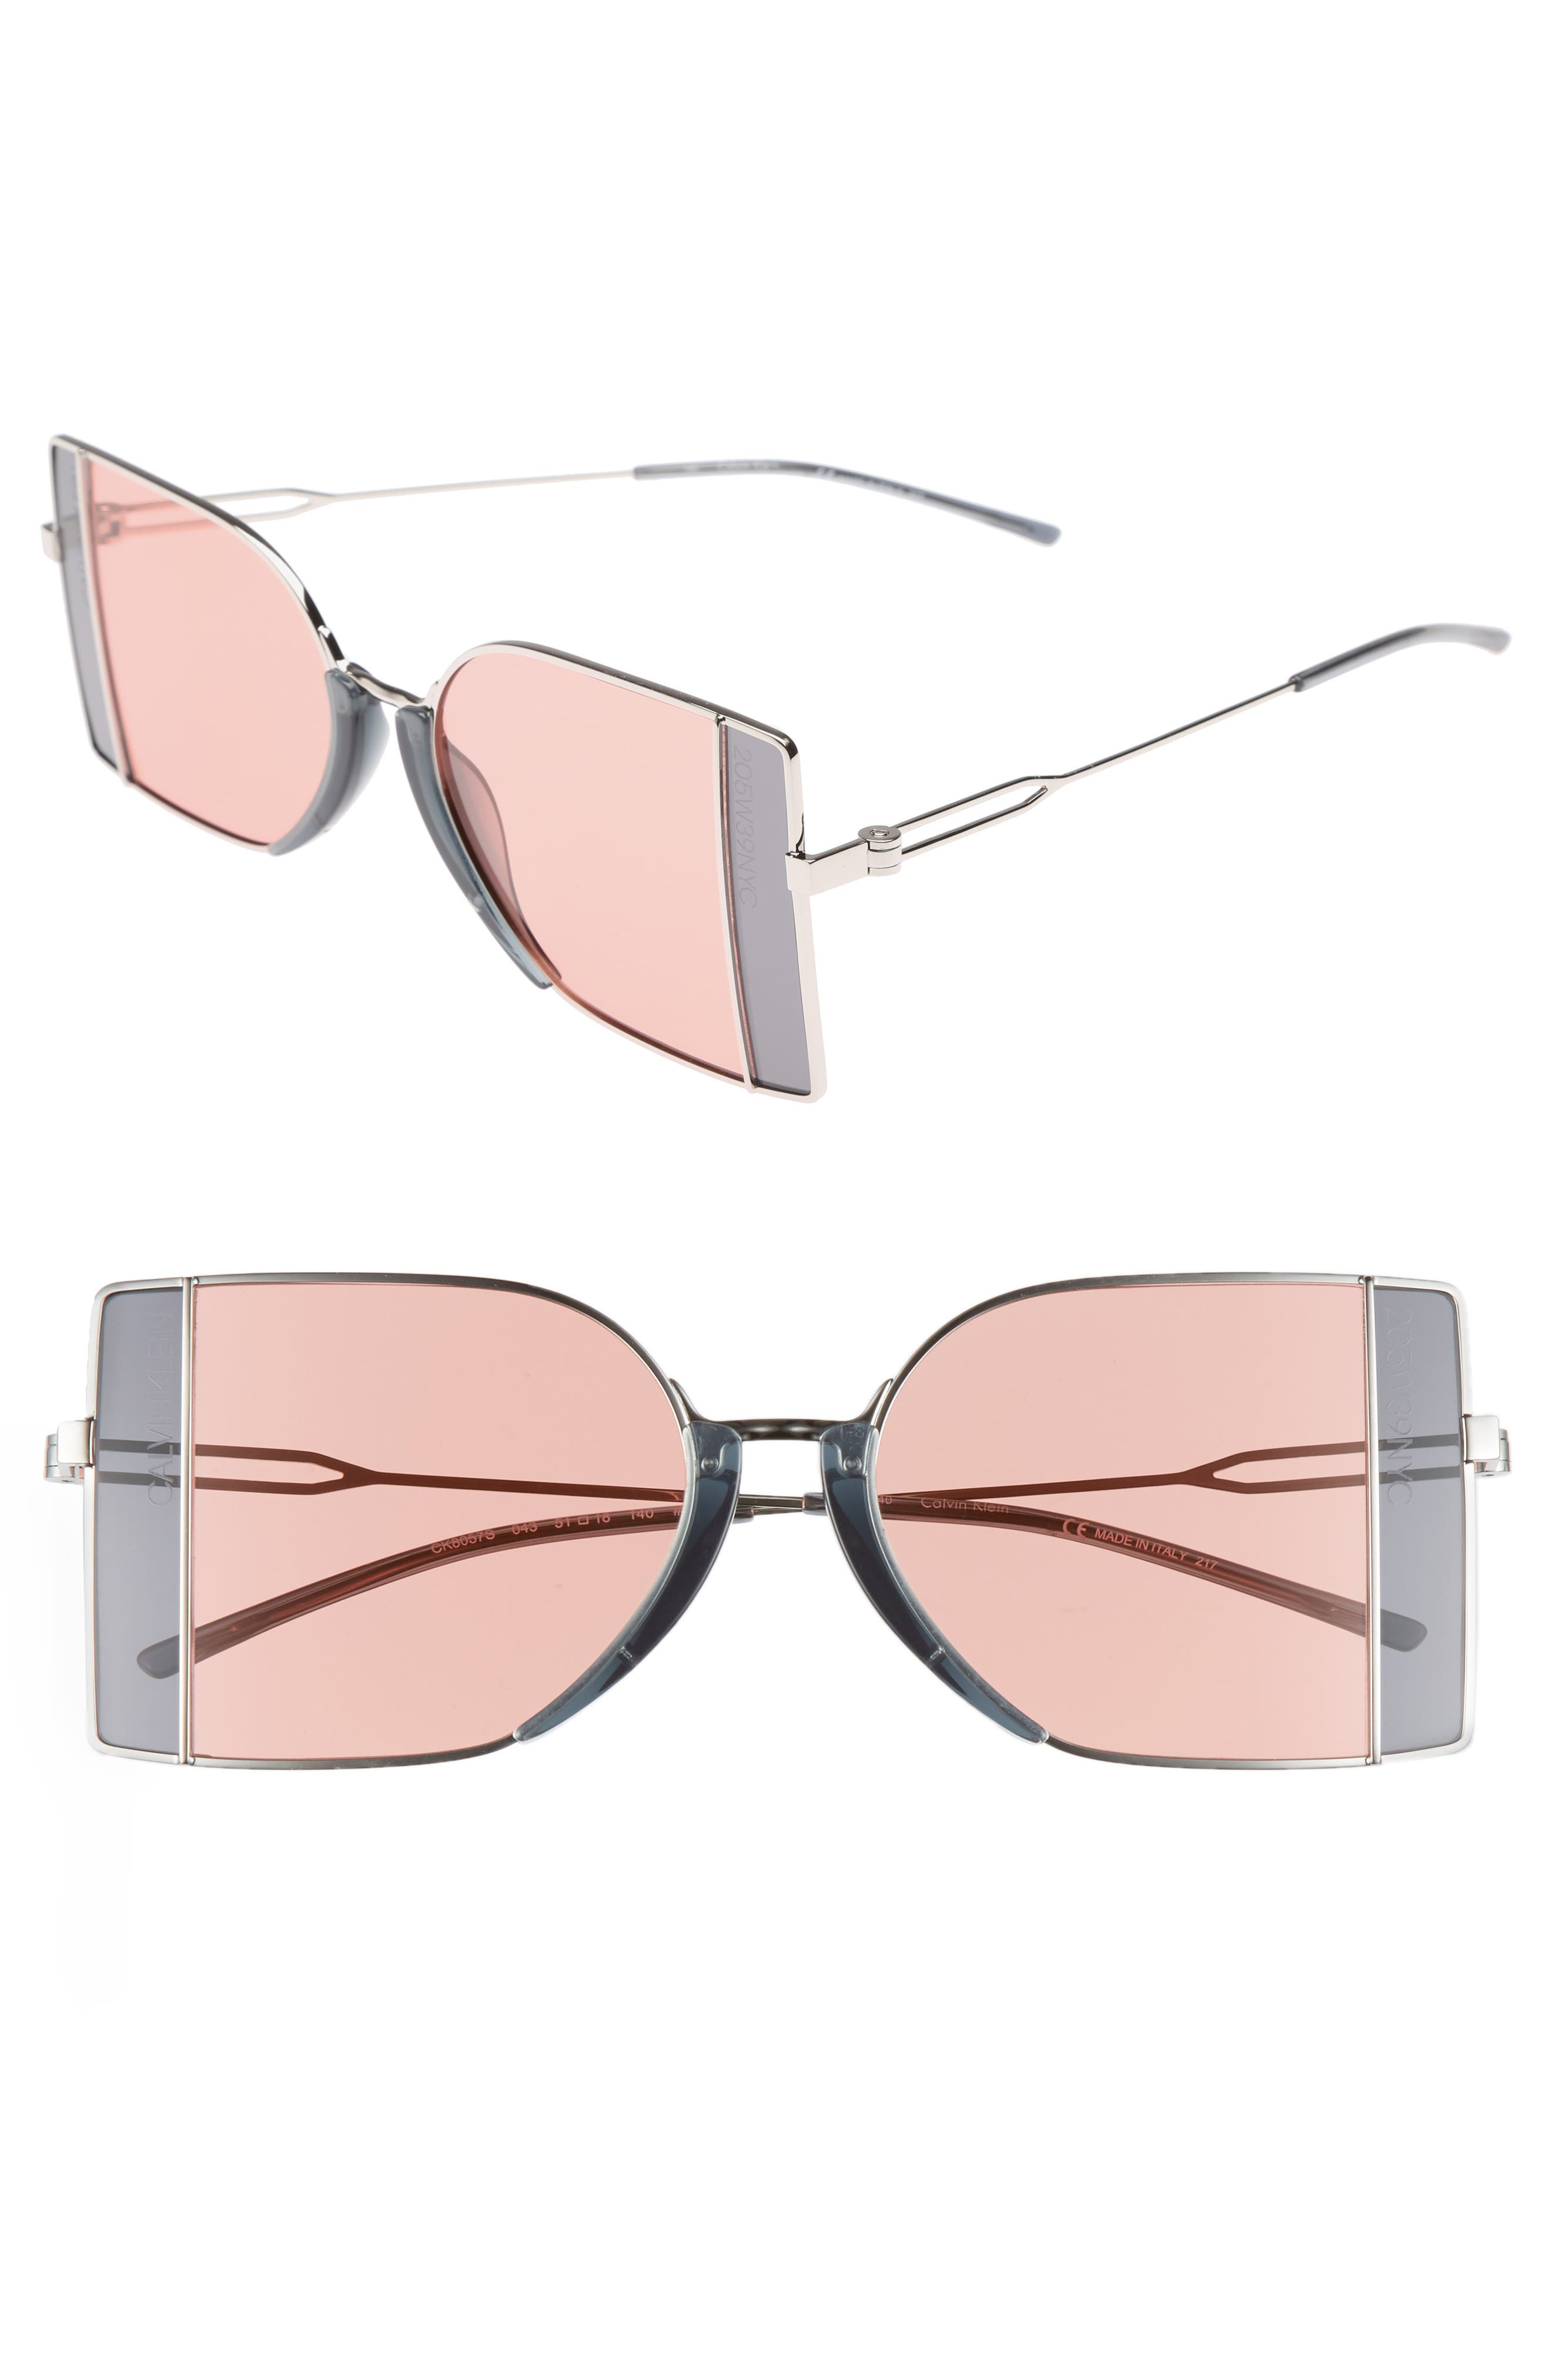 205W39NYC 51mm Butterfly Sunglasses,                             Main thumbnail 1, color,                             040